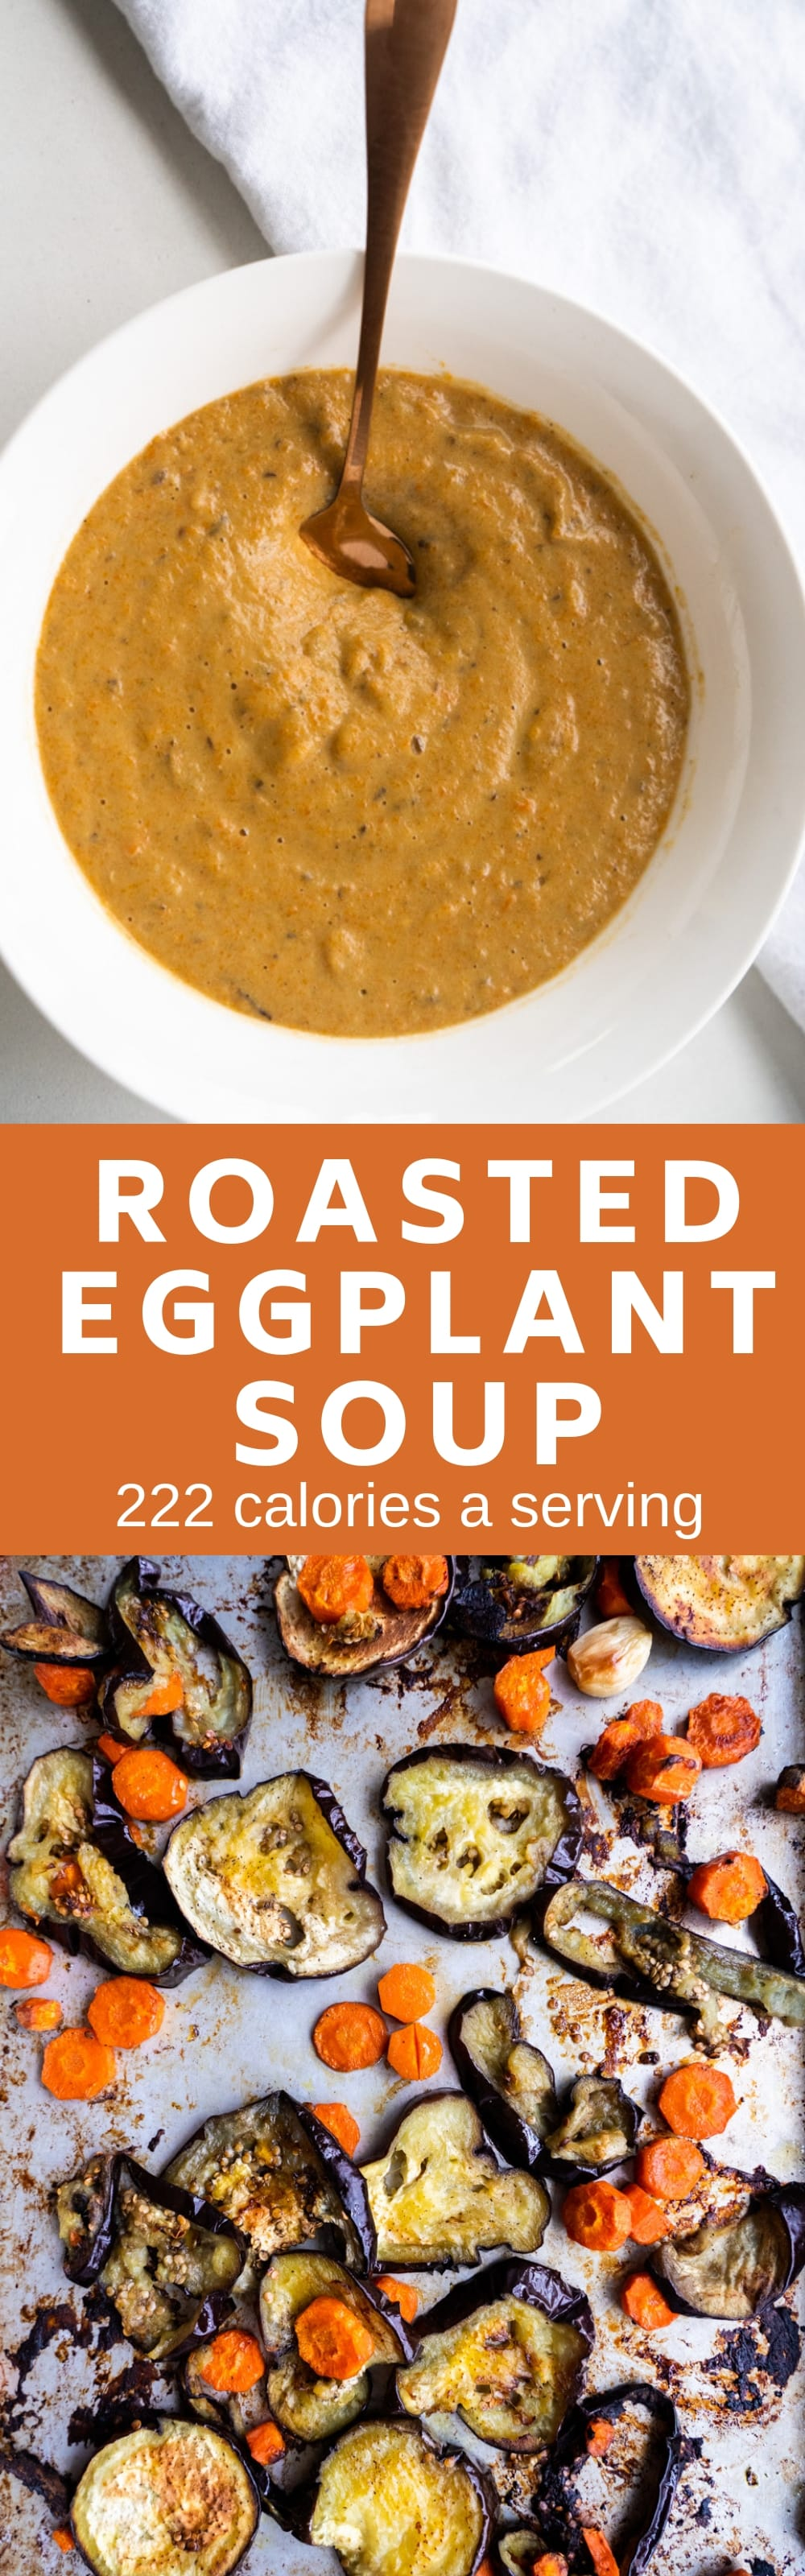 Roasted Eggplant Soup recipe made with eggplant, carrots and garlic. This creamy healthy soup is easy to make and only 222 calories a serving. It's one of my family's favorite suppers!Recipe is vegetarian and can easily be made vegan.